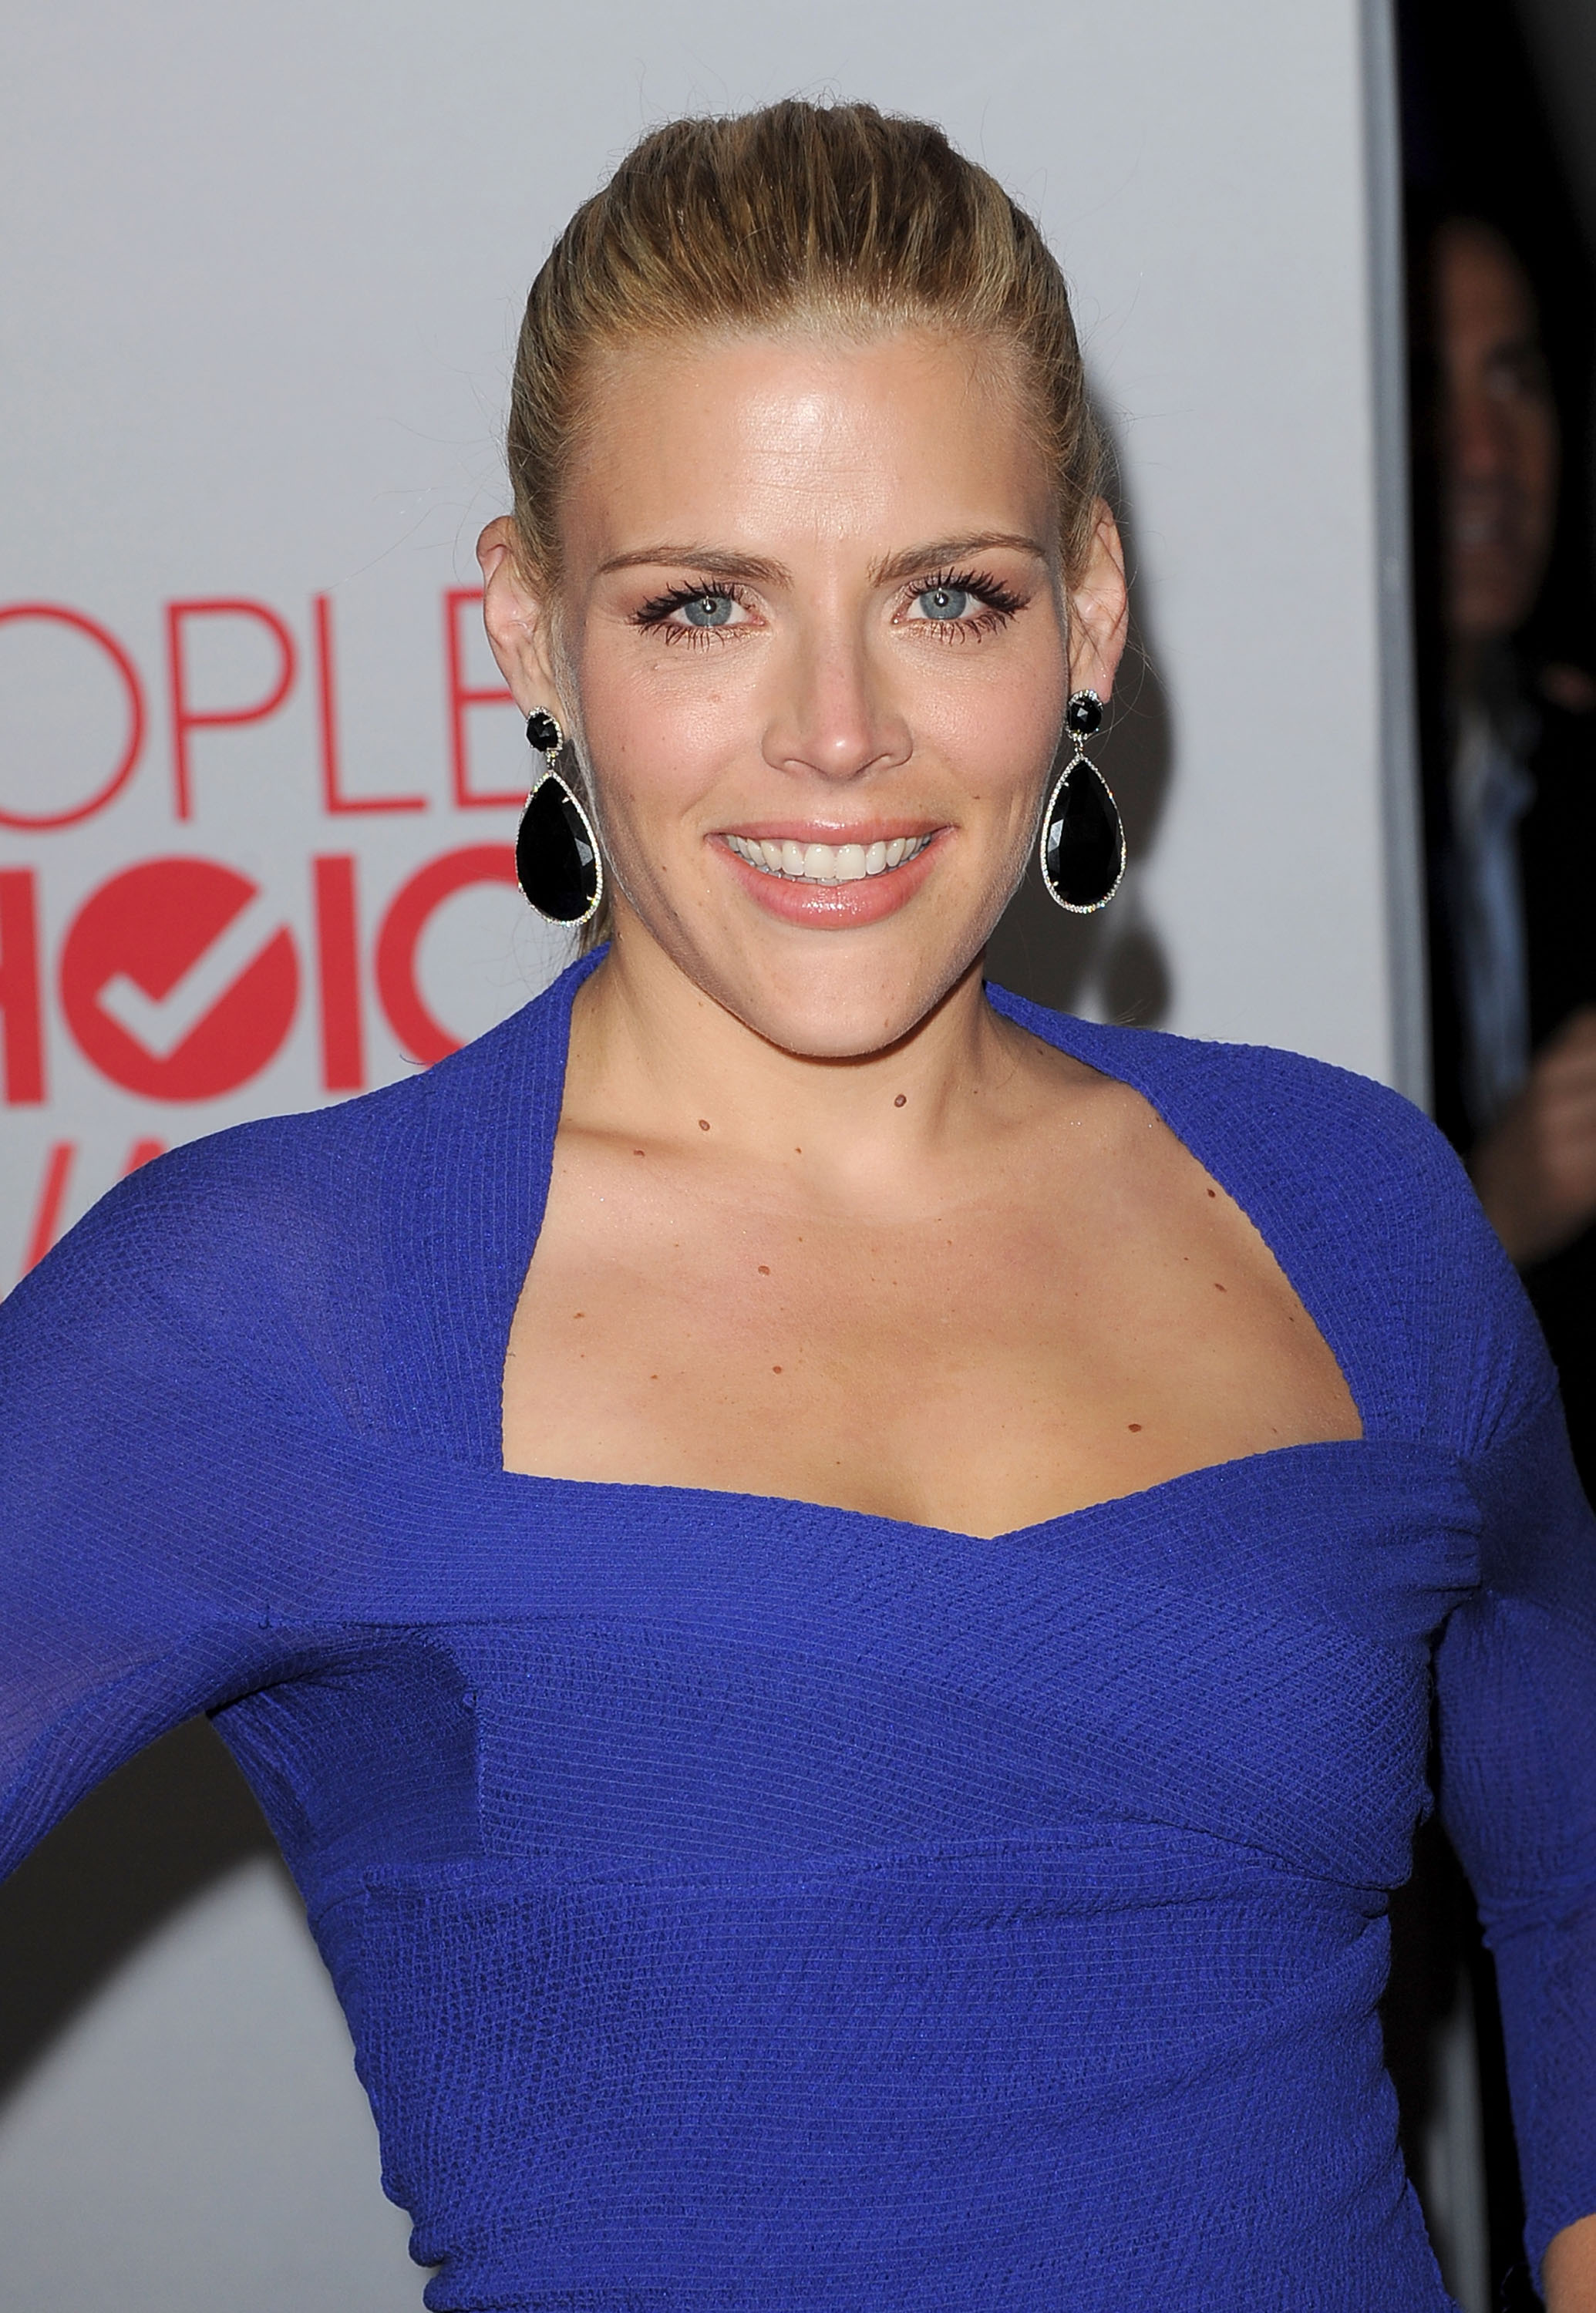 Busy Philipps was all smiles in LA.